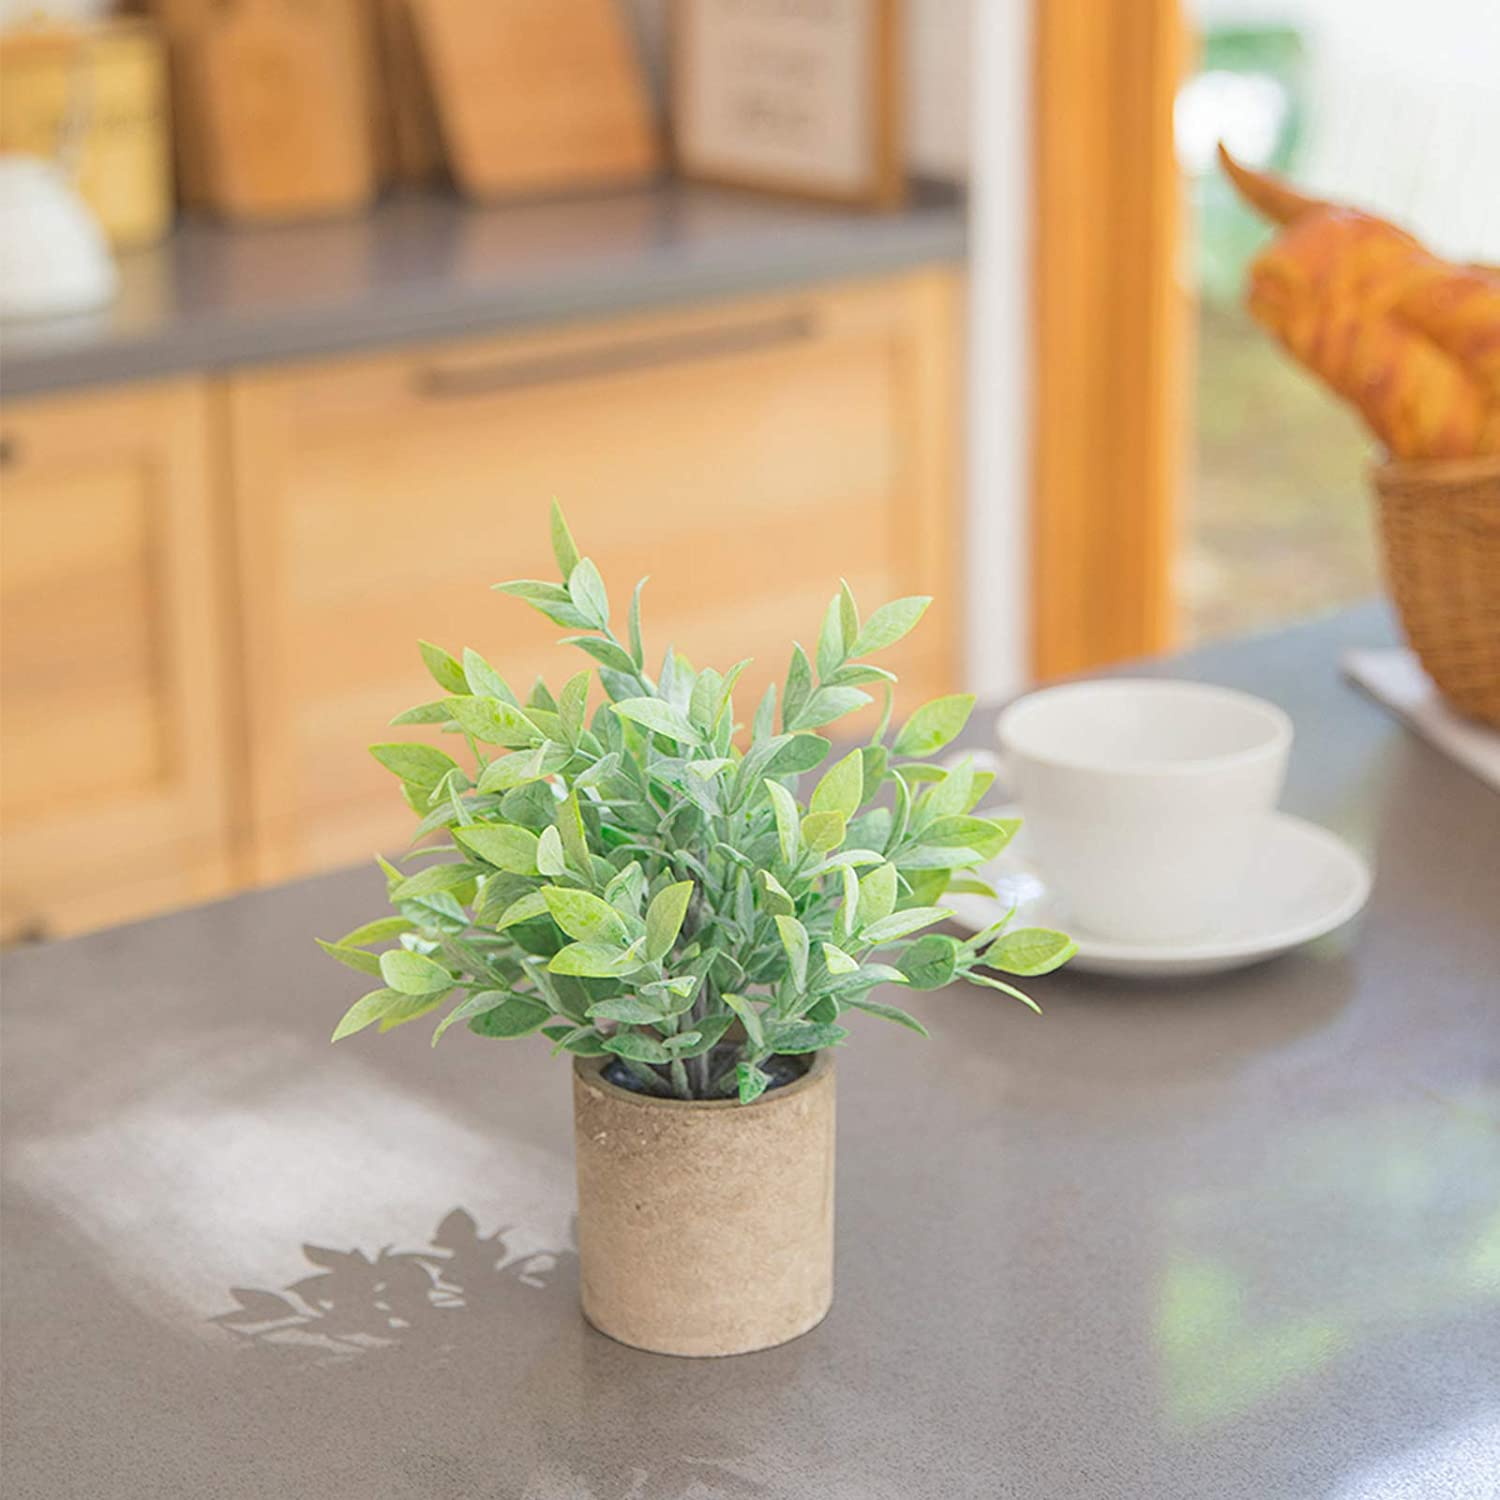 THE BLOOM TIMES Set of 3 Small Artificial Plants in Pots Rustic Plastic Fake Greenery Eucalyptus Rosemary Faux Potted Plants for Home Office Desk Farmhouse Bathroom Bookshelf Kitchen Indoor Decor